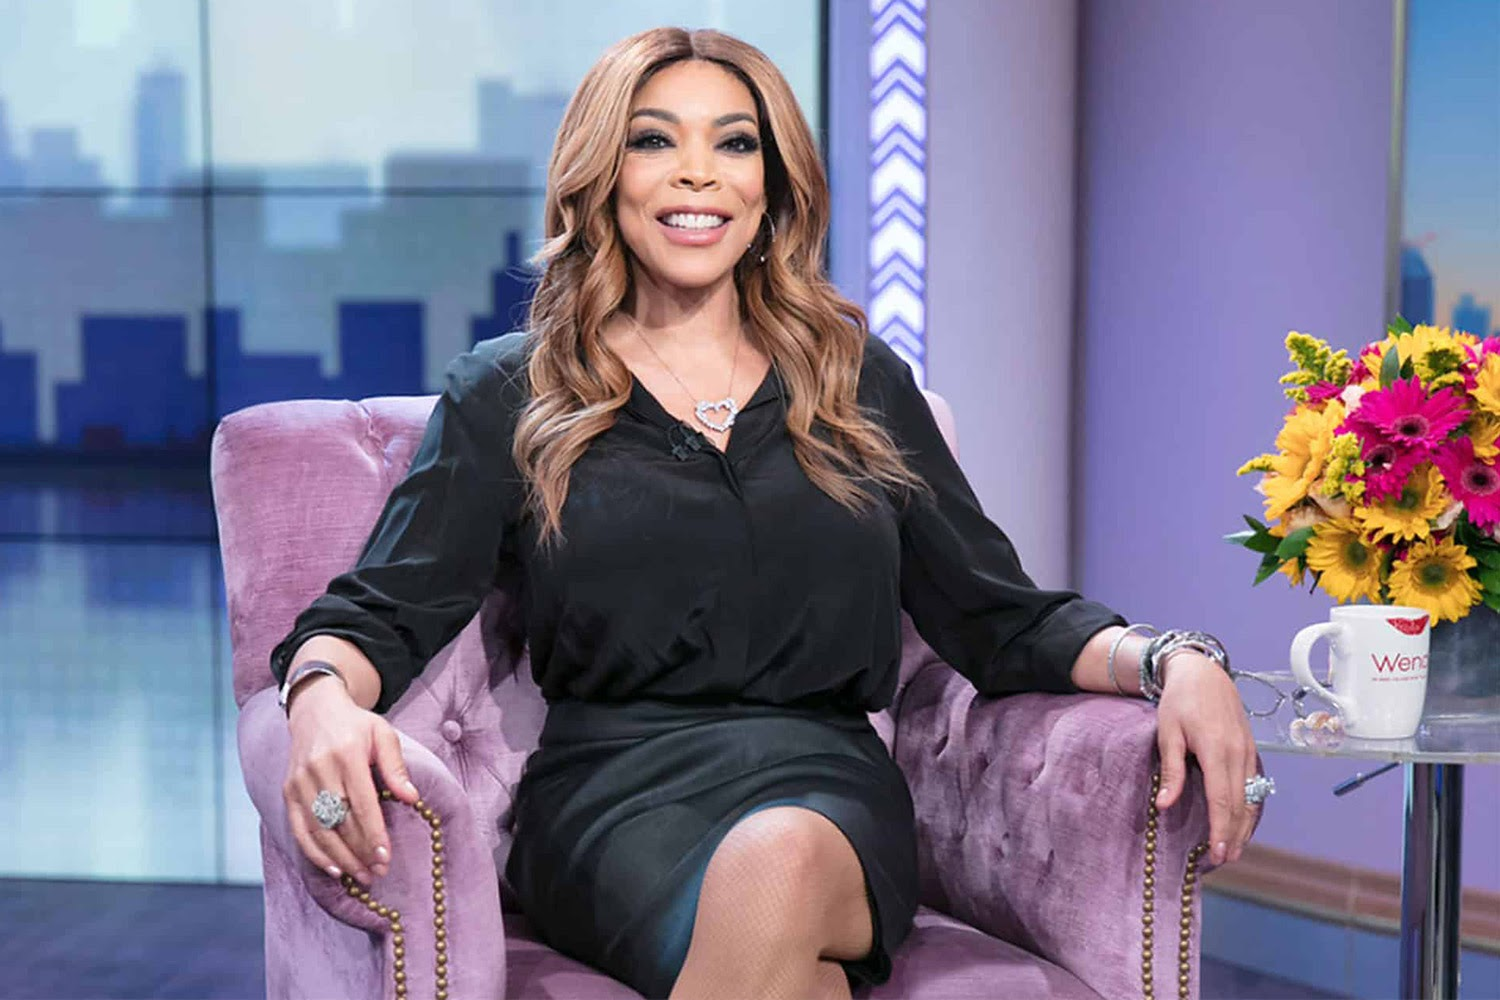 Wendy Williams poses in her iconic purple chair on the set of the Wendy Williams show.